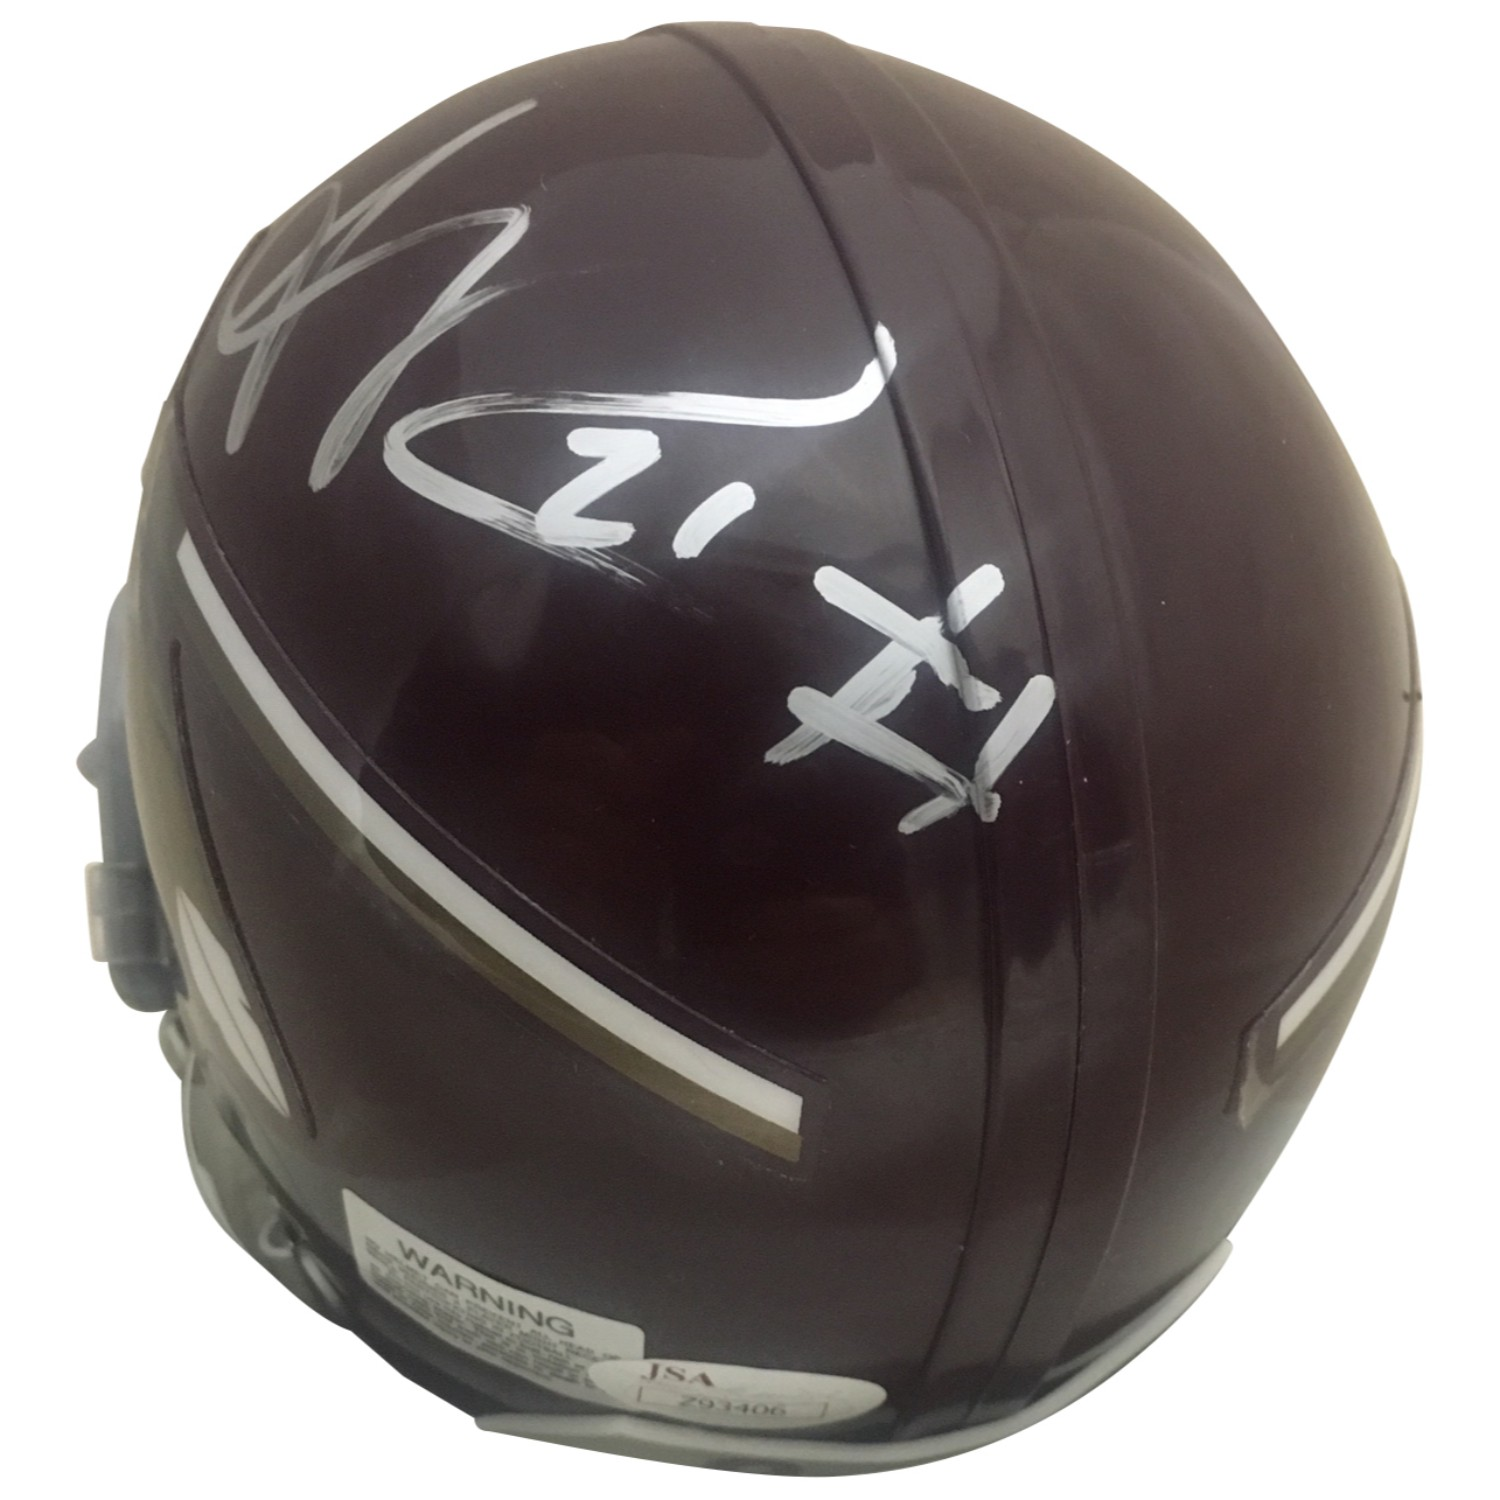 Sean Taylor Autographed Washington Redskins Signed Throwback Football Mini Helmet JSA COA Former Washington Redskins Pro Bowler Sean Taylor has autographed this officially licensed Redskins throwback mini helmet.  Since his tragic death at such a young age, his autographed collectibles are very tough to come by.  Autograph is authenticated by James Spence Authentication (JSA), the world's leading authenticator of sports autographs. Comes with their unique sticker # fixed to the item and verified on their website. Also, comes with their certificate of authenticity with same matching sticker #. Receive exact item shown.  Mini helmets measure about 6x5x4.""